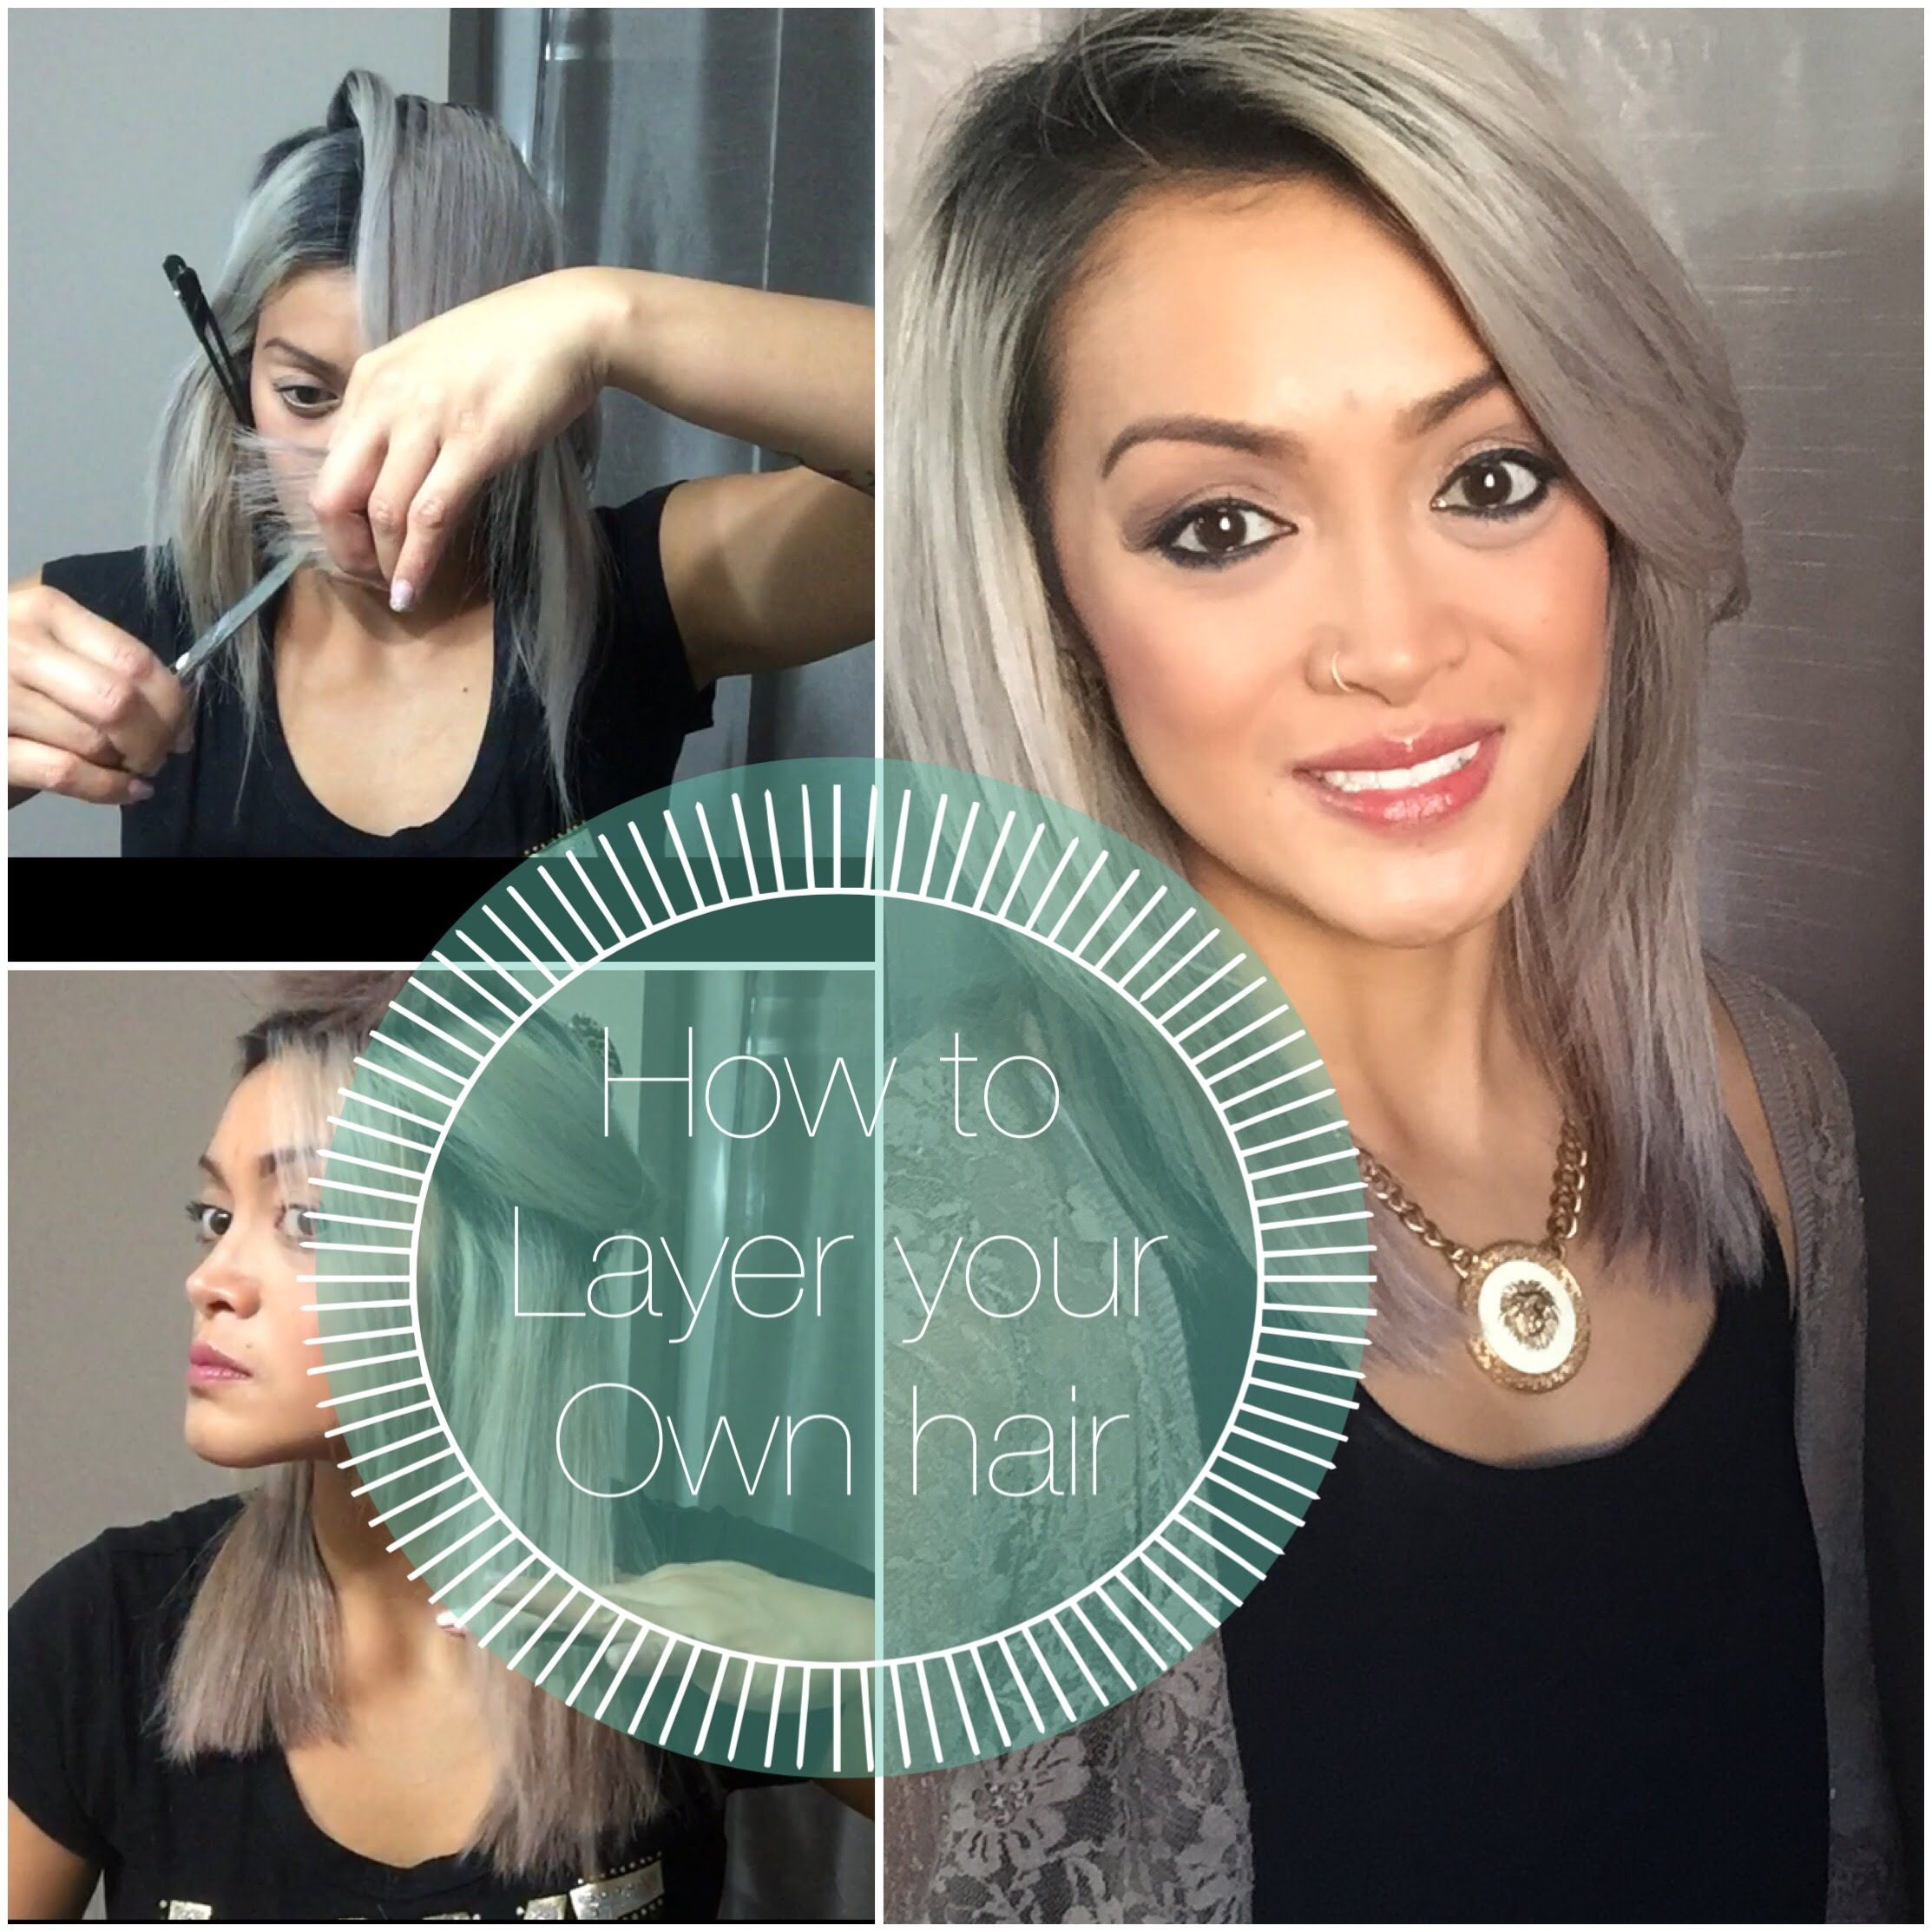 How to layer your own hair hair styles pinterest layering in this video i will show you how i cut my own hair into a long bob cut editing software imovie theme and background music modern from imovie solutioingenieria Choice Image